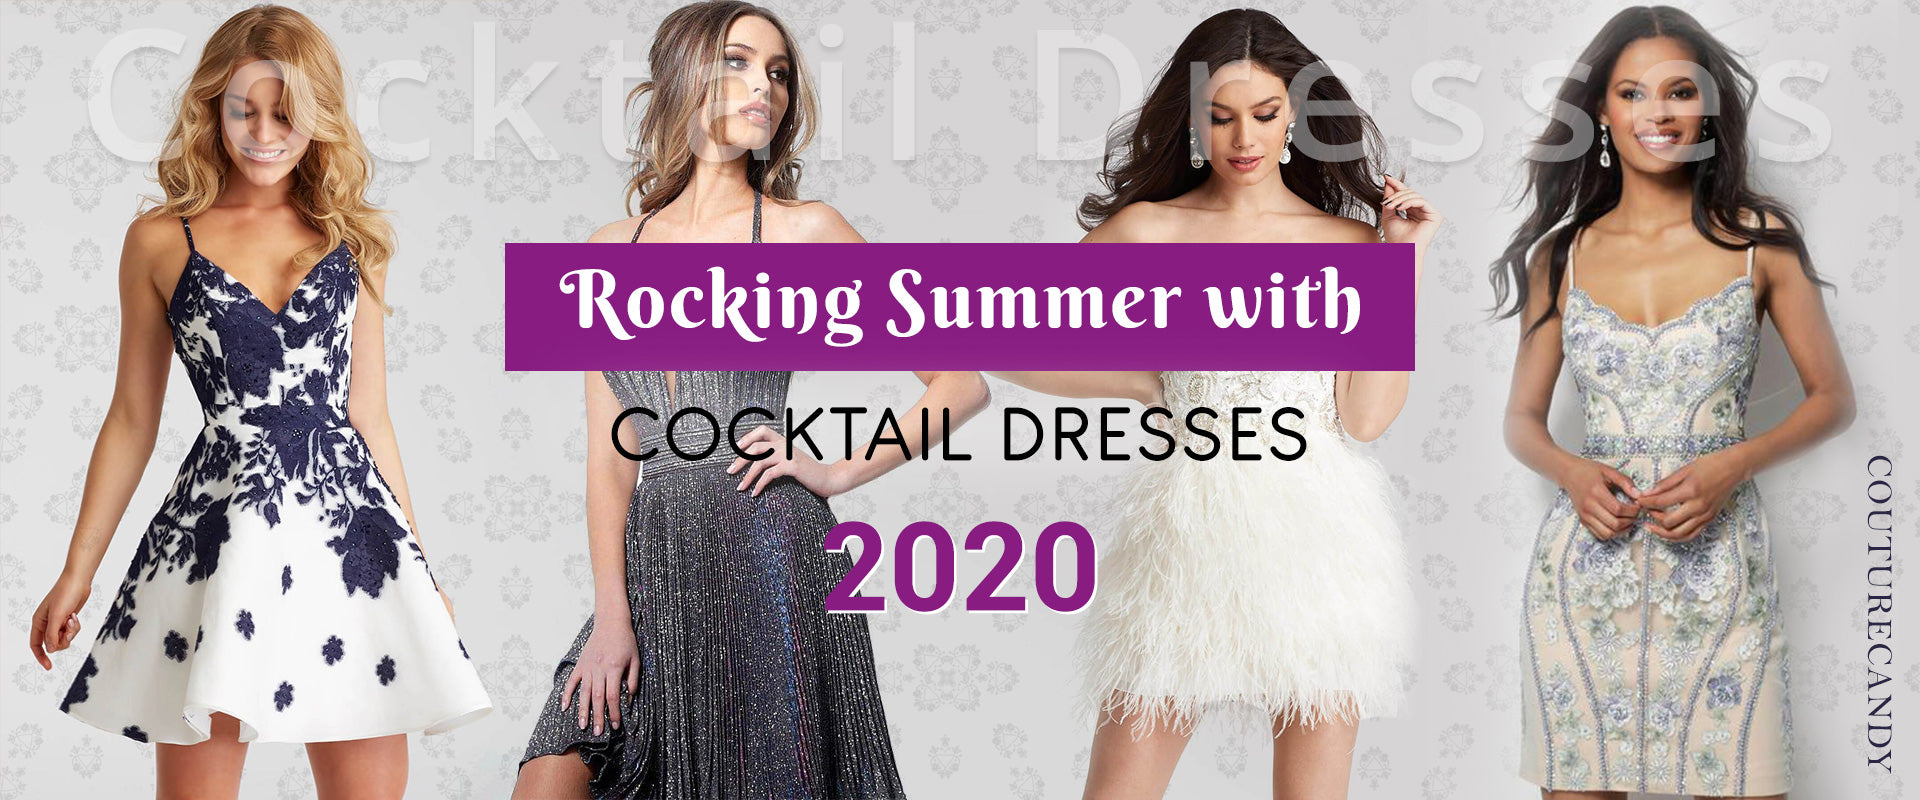 Gorgeous Summer Cocktail Dresses & Top Trends 2020